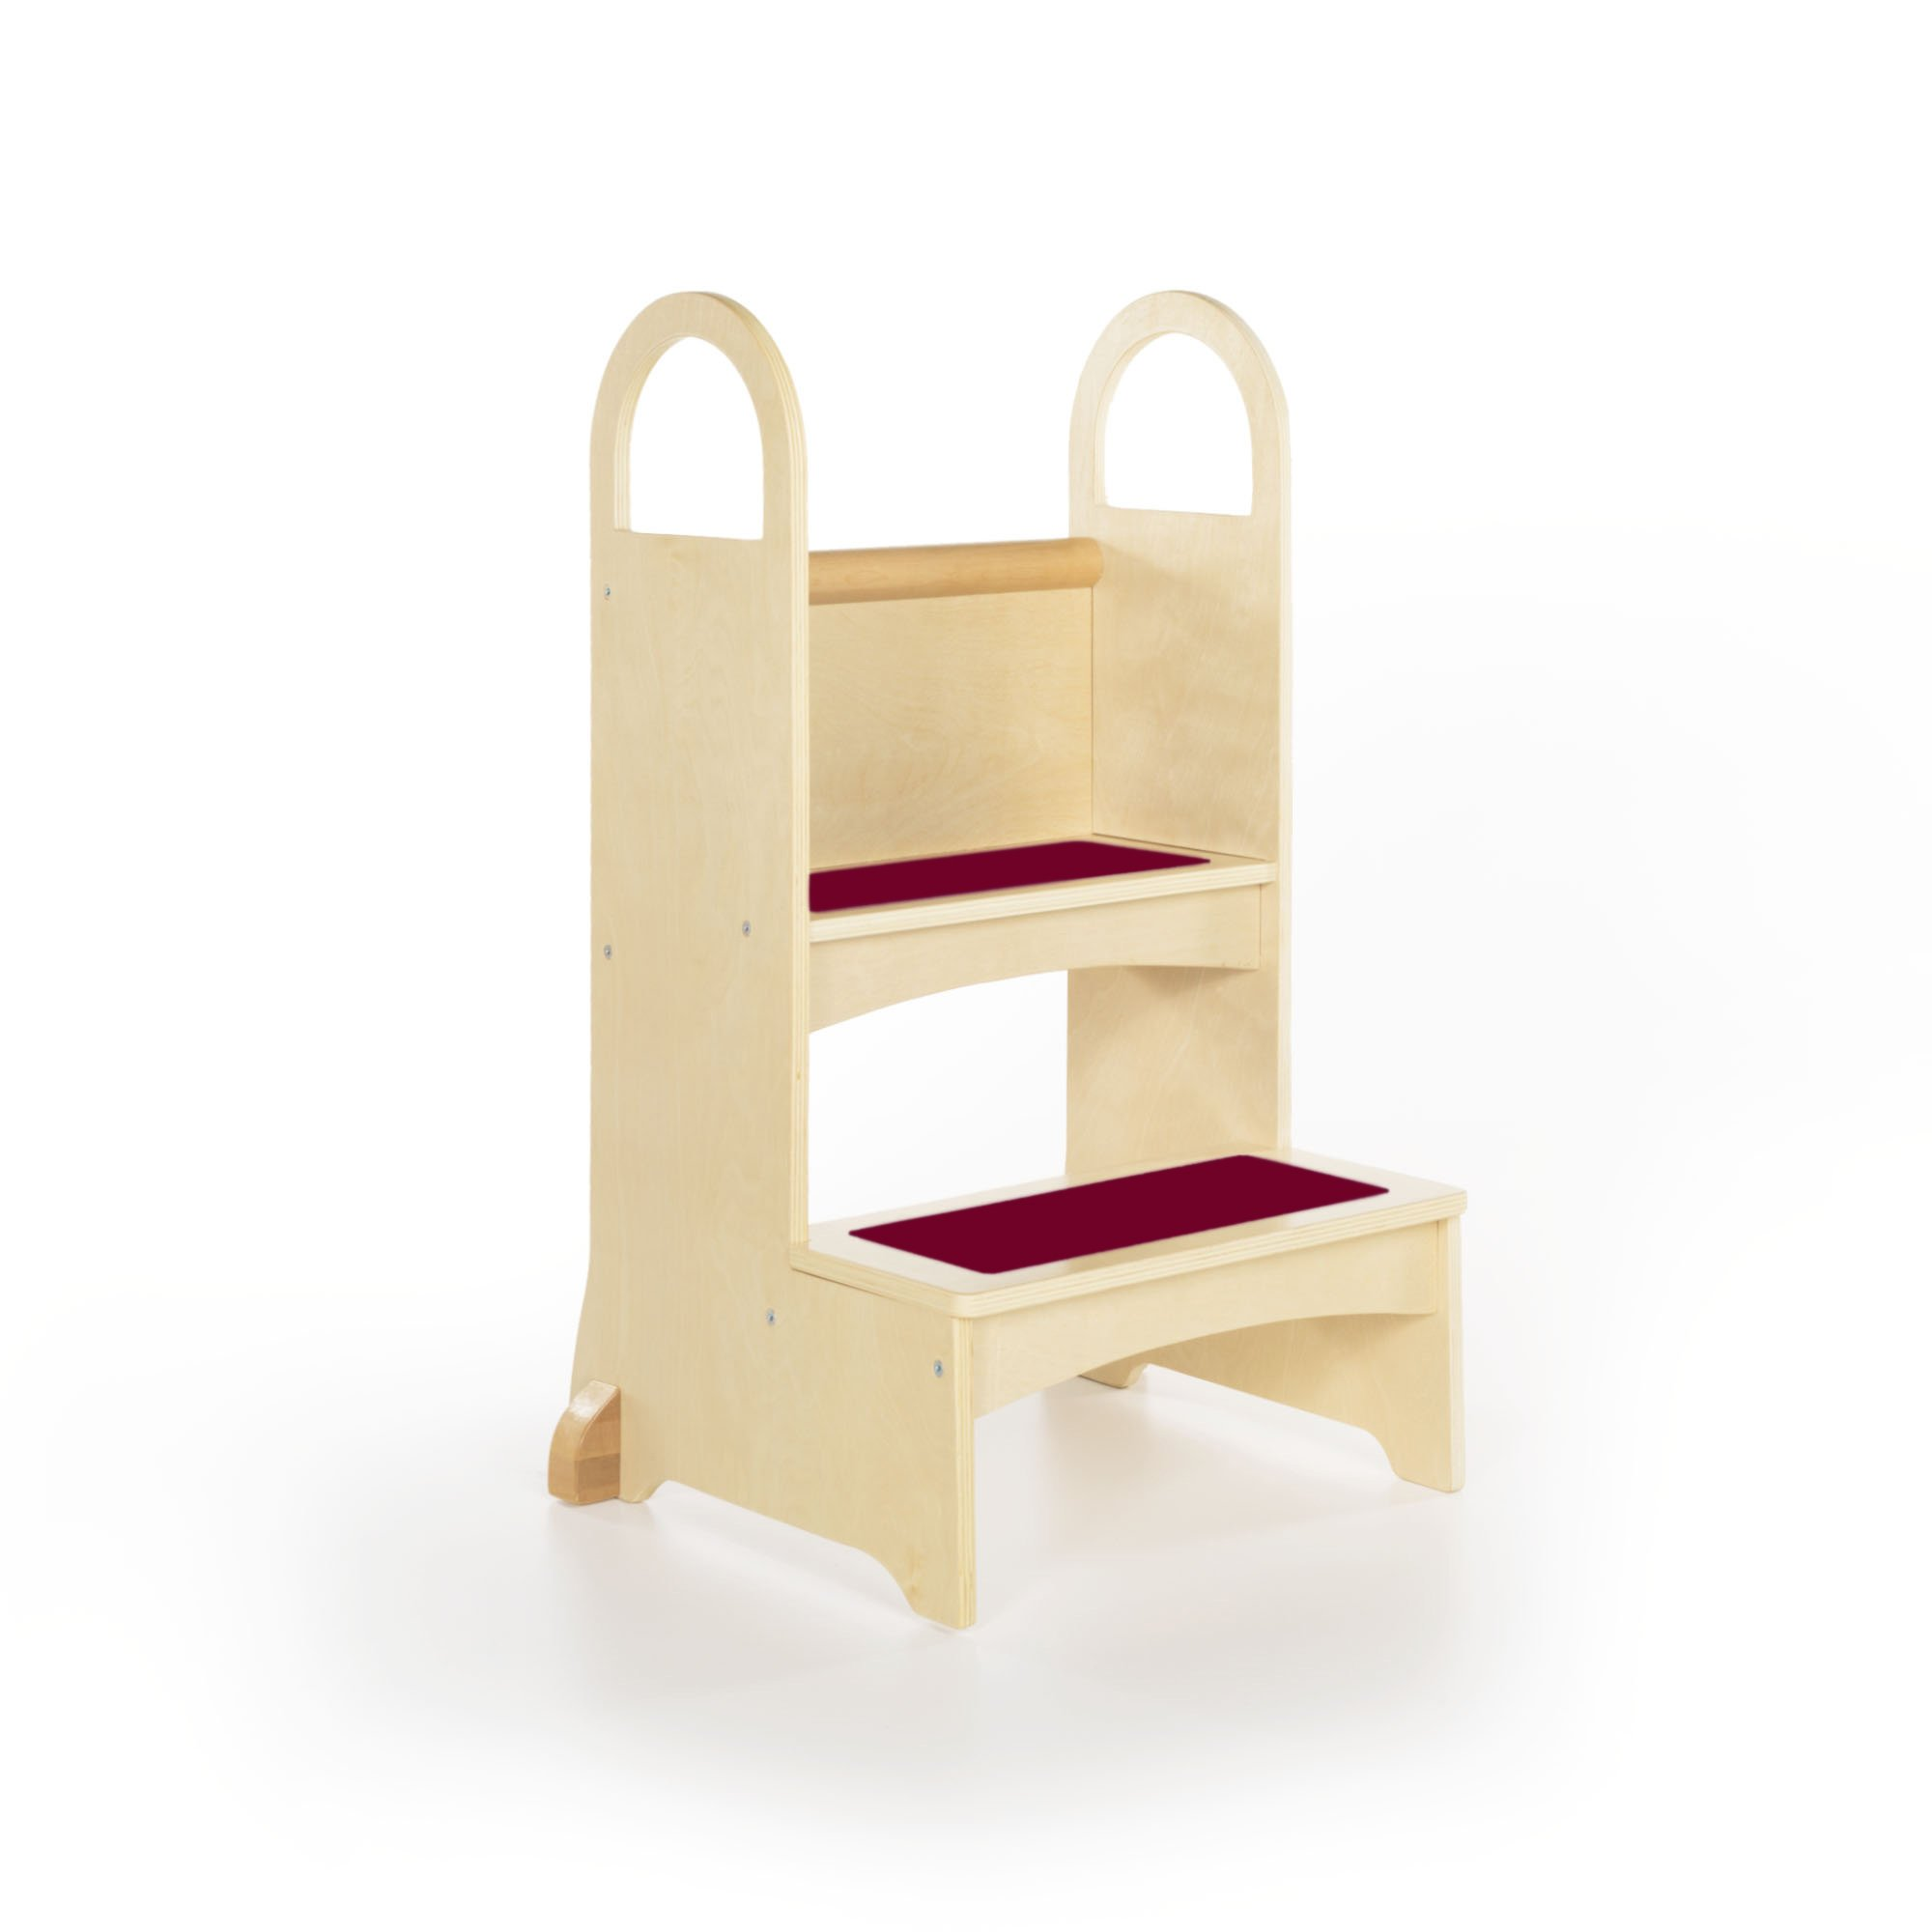 Guidecraft Kitchen Helper High-Rise Step-Up - Natural: Wooden Step Stool for Toddlers, Counter Height with Handholds - Quality Kids' Furniture